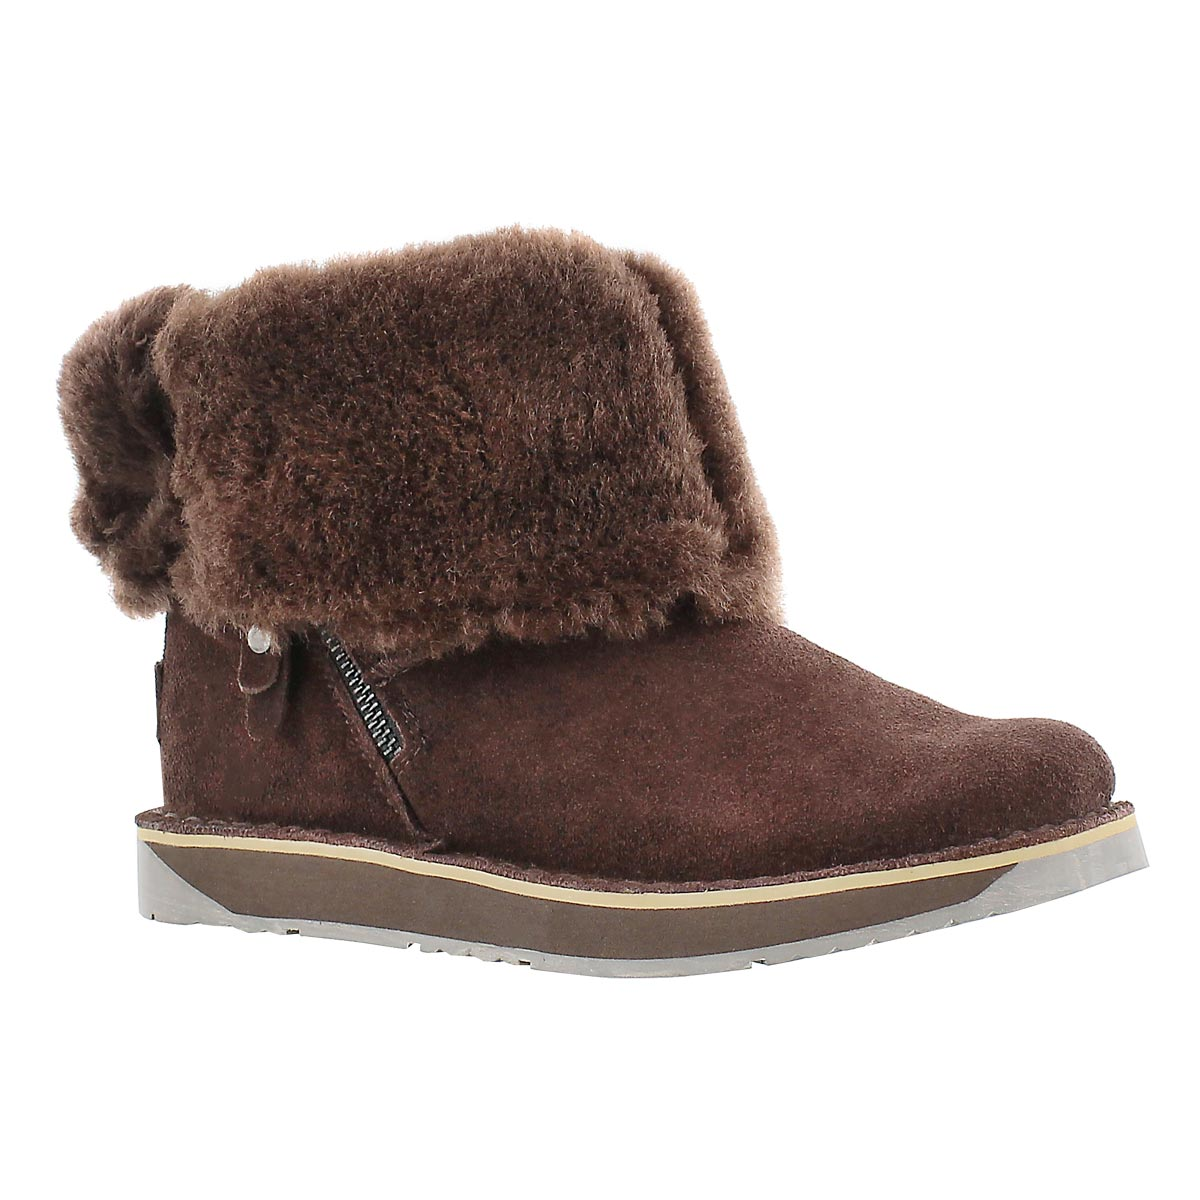 Lds Norway chocolate suede zipper boot